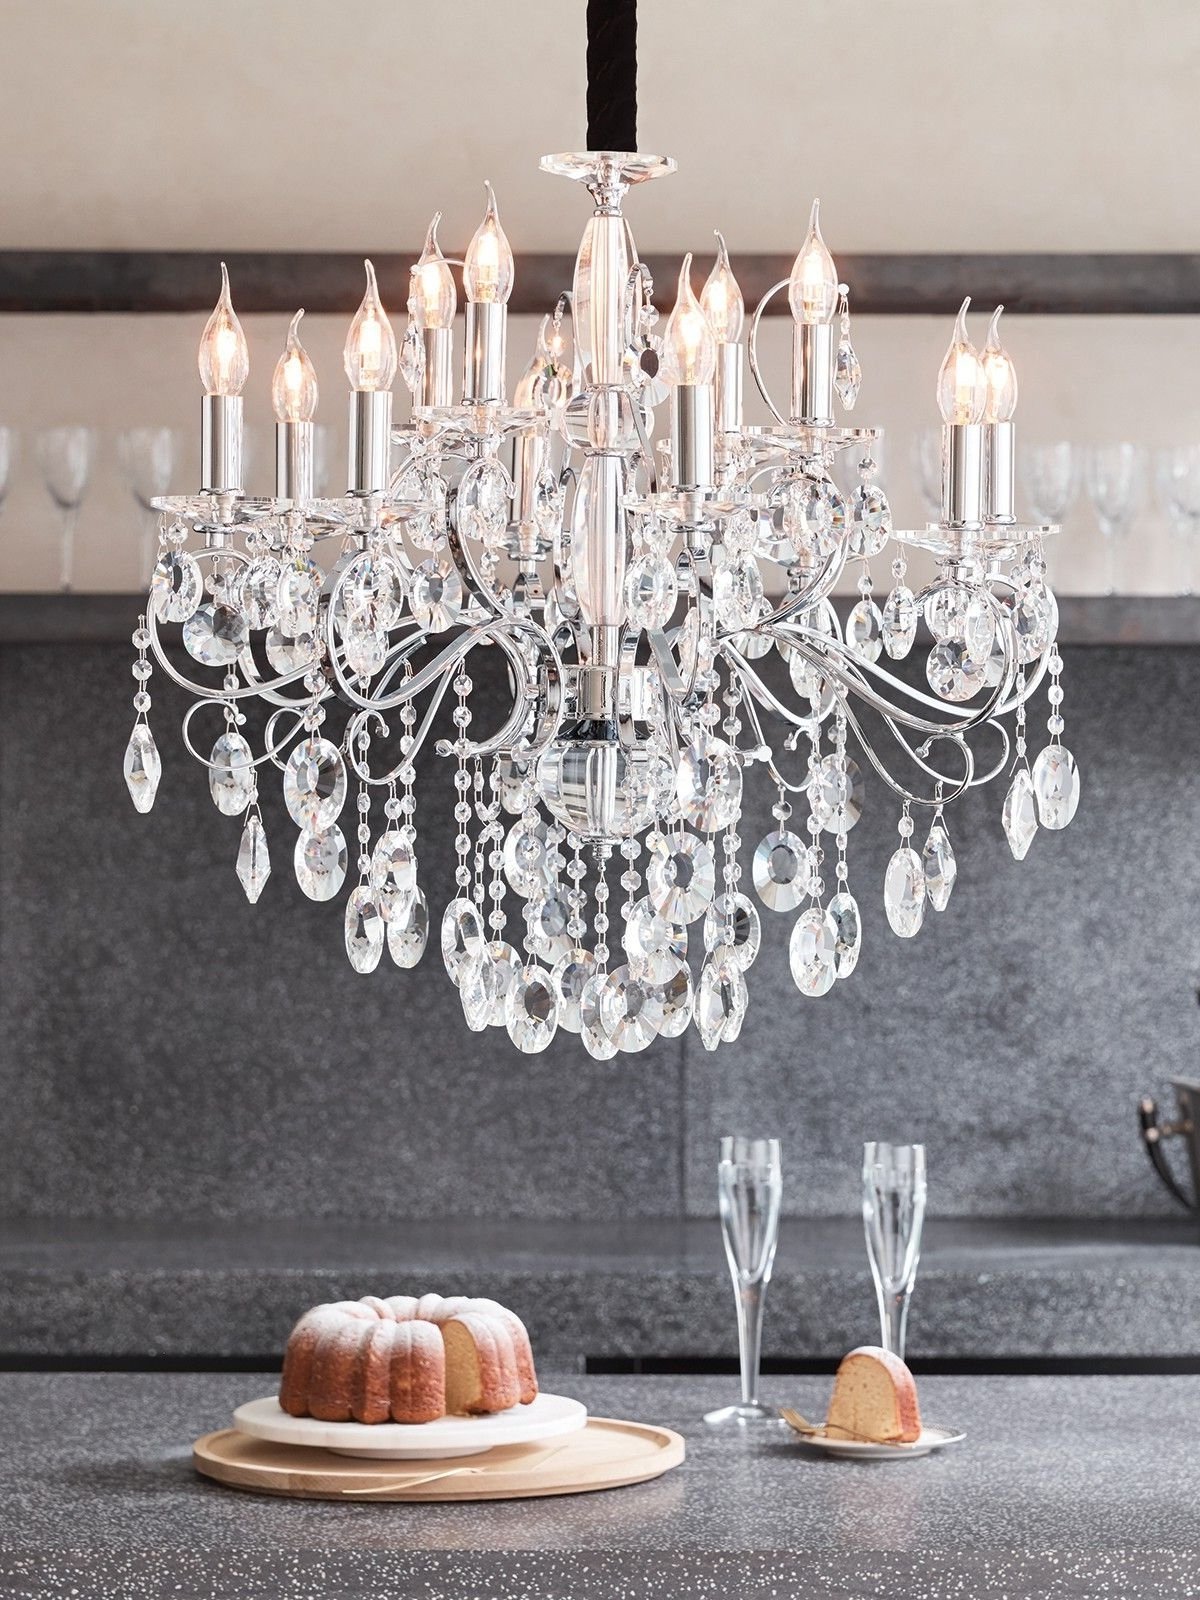 2019 Madeleine 12 Light Egyptian Crystal Chandelier In Chrome (View 4 of 20)